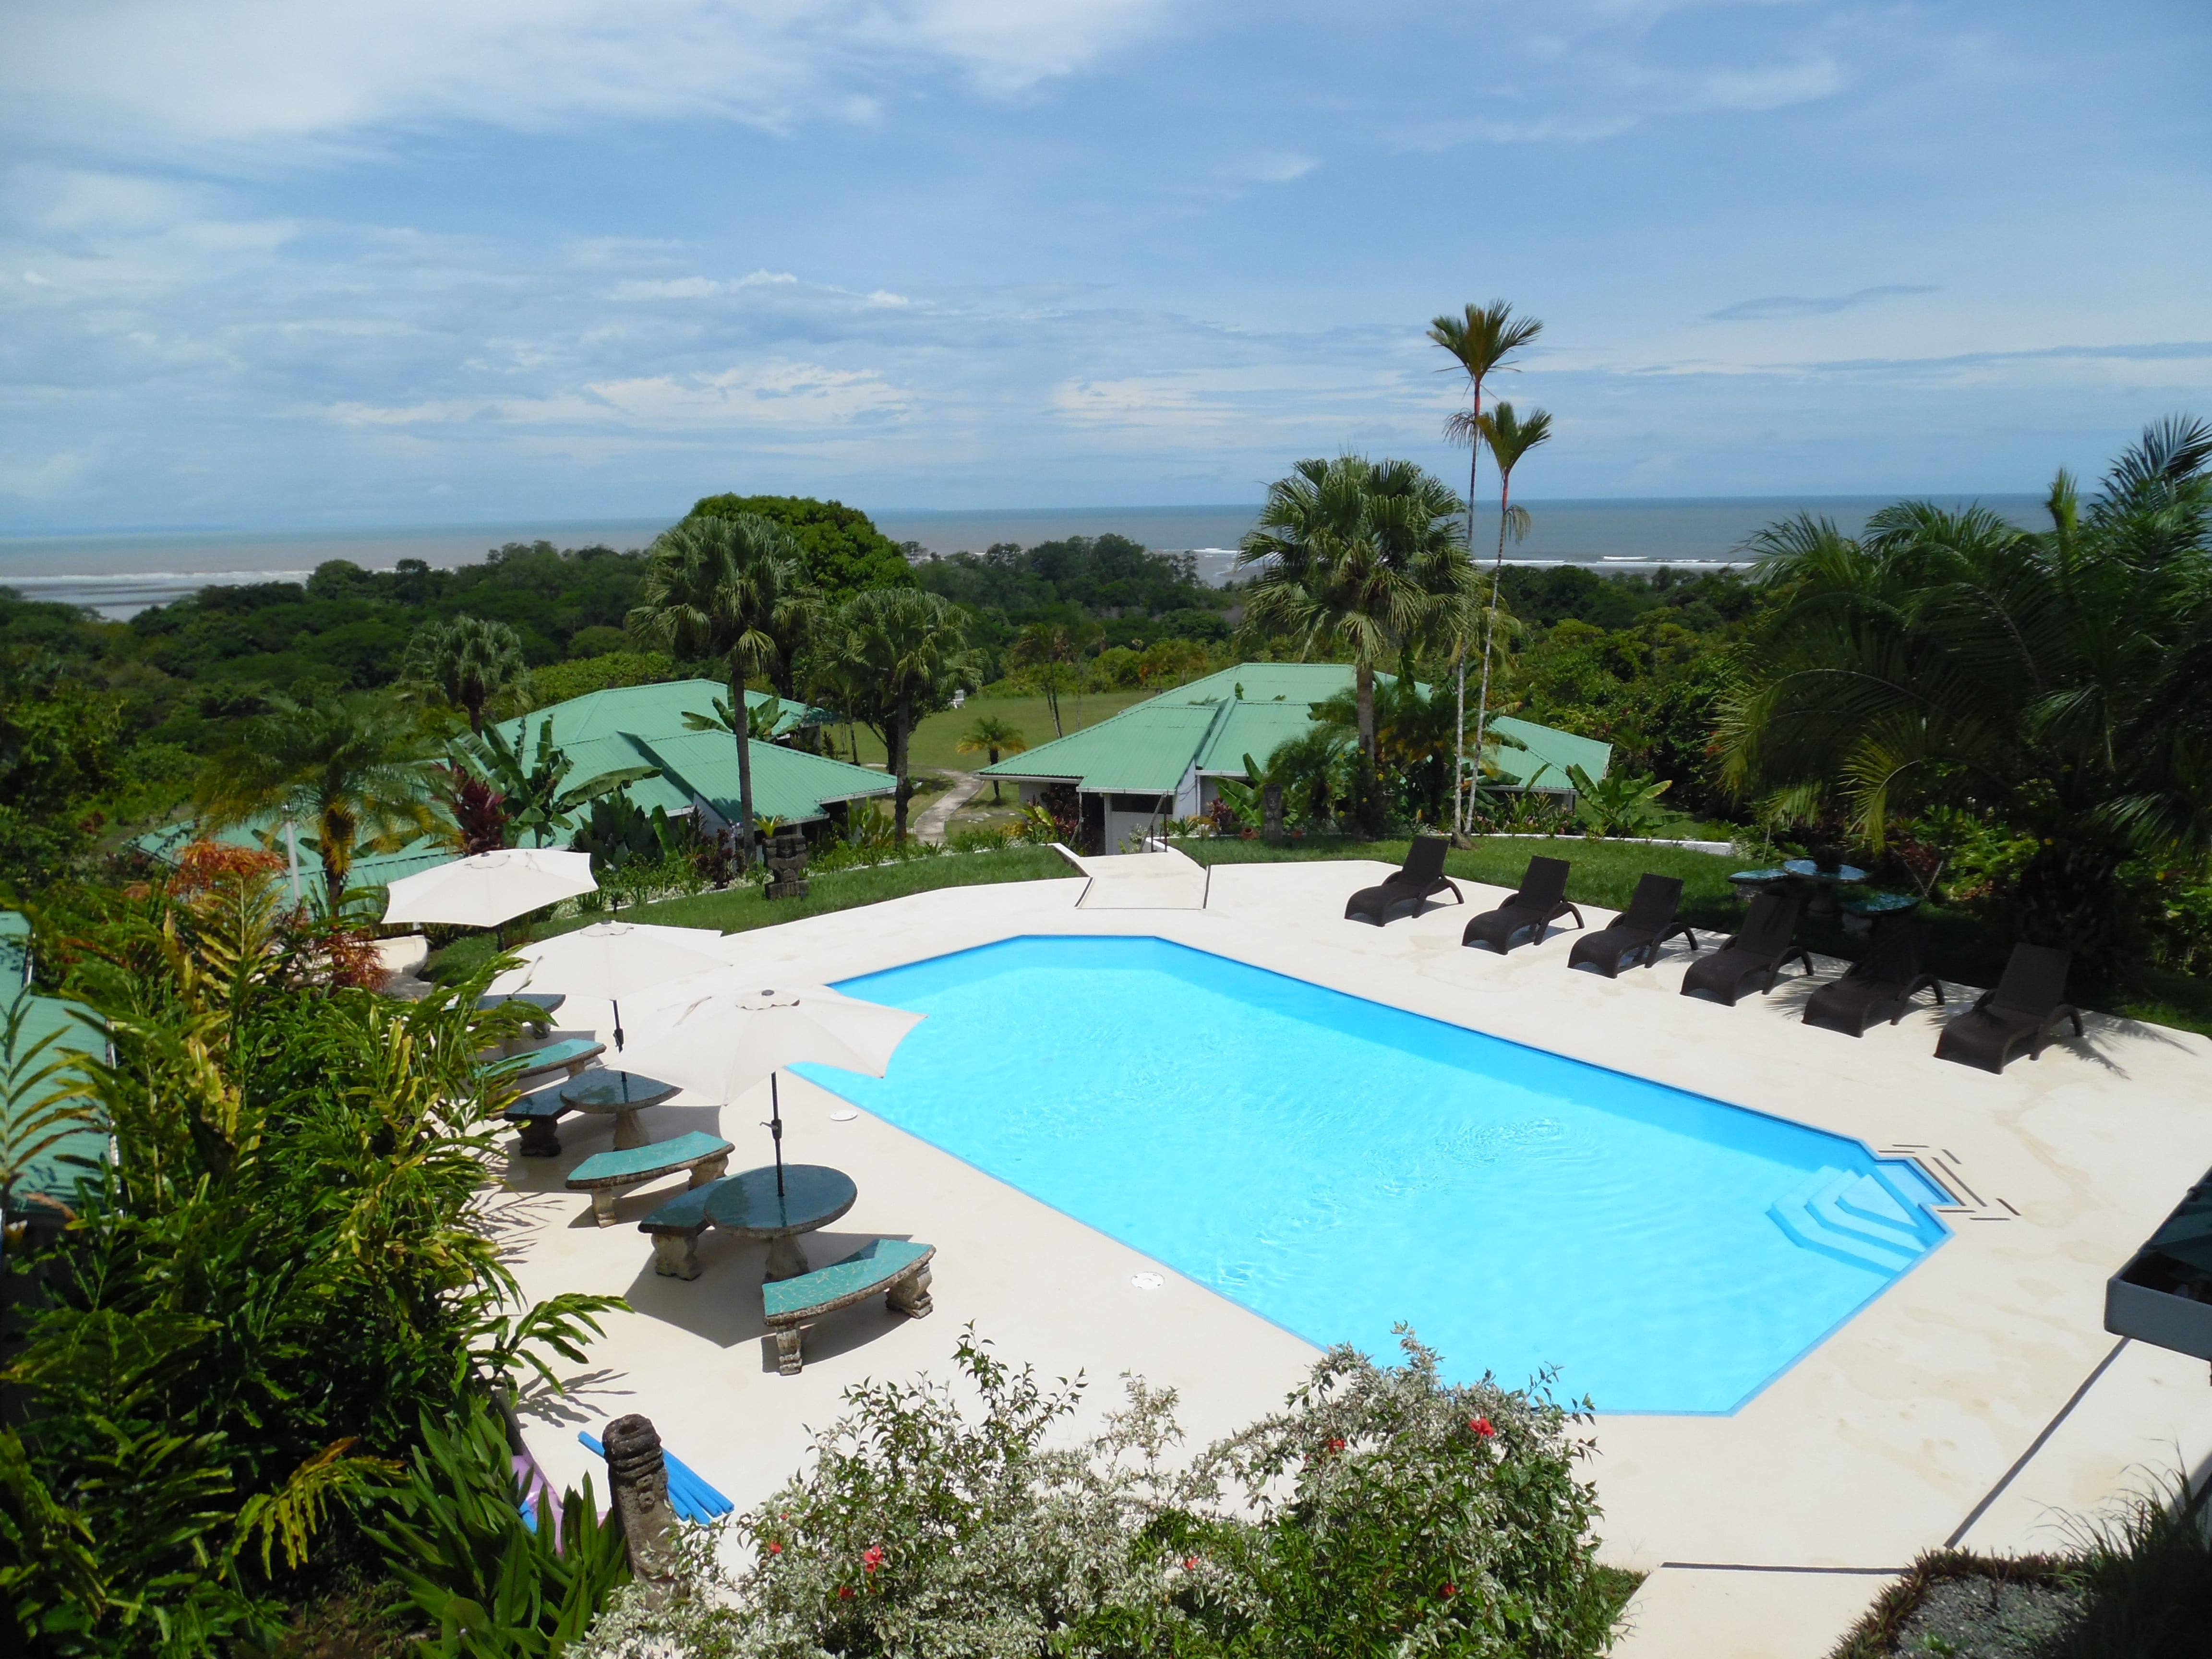 14.11 ACRES - 12 Room Ocean View Hotel With Pool, Restaurant, And Room For Expansion!!!!